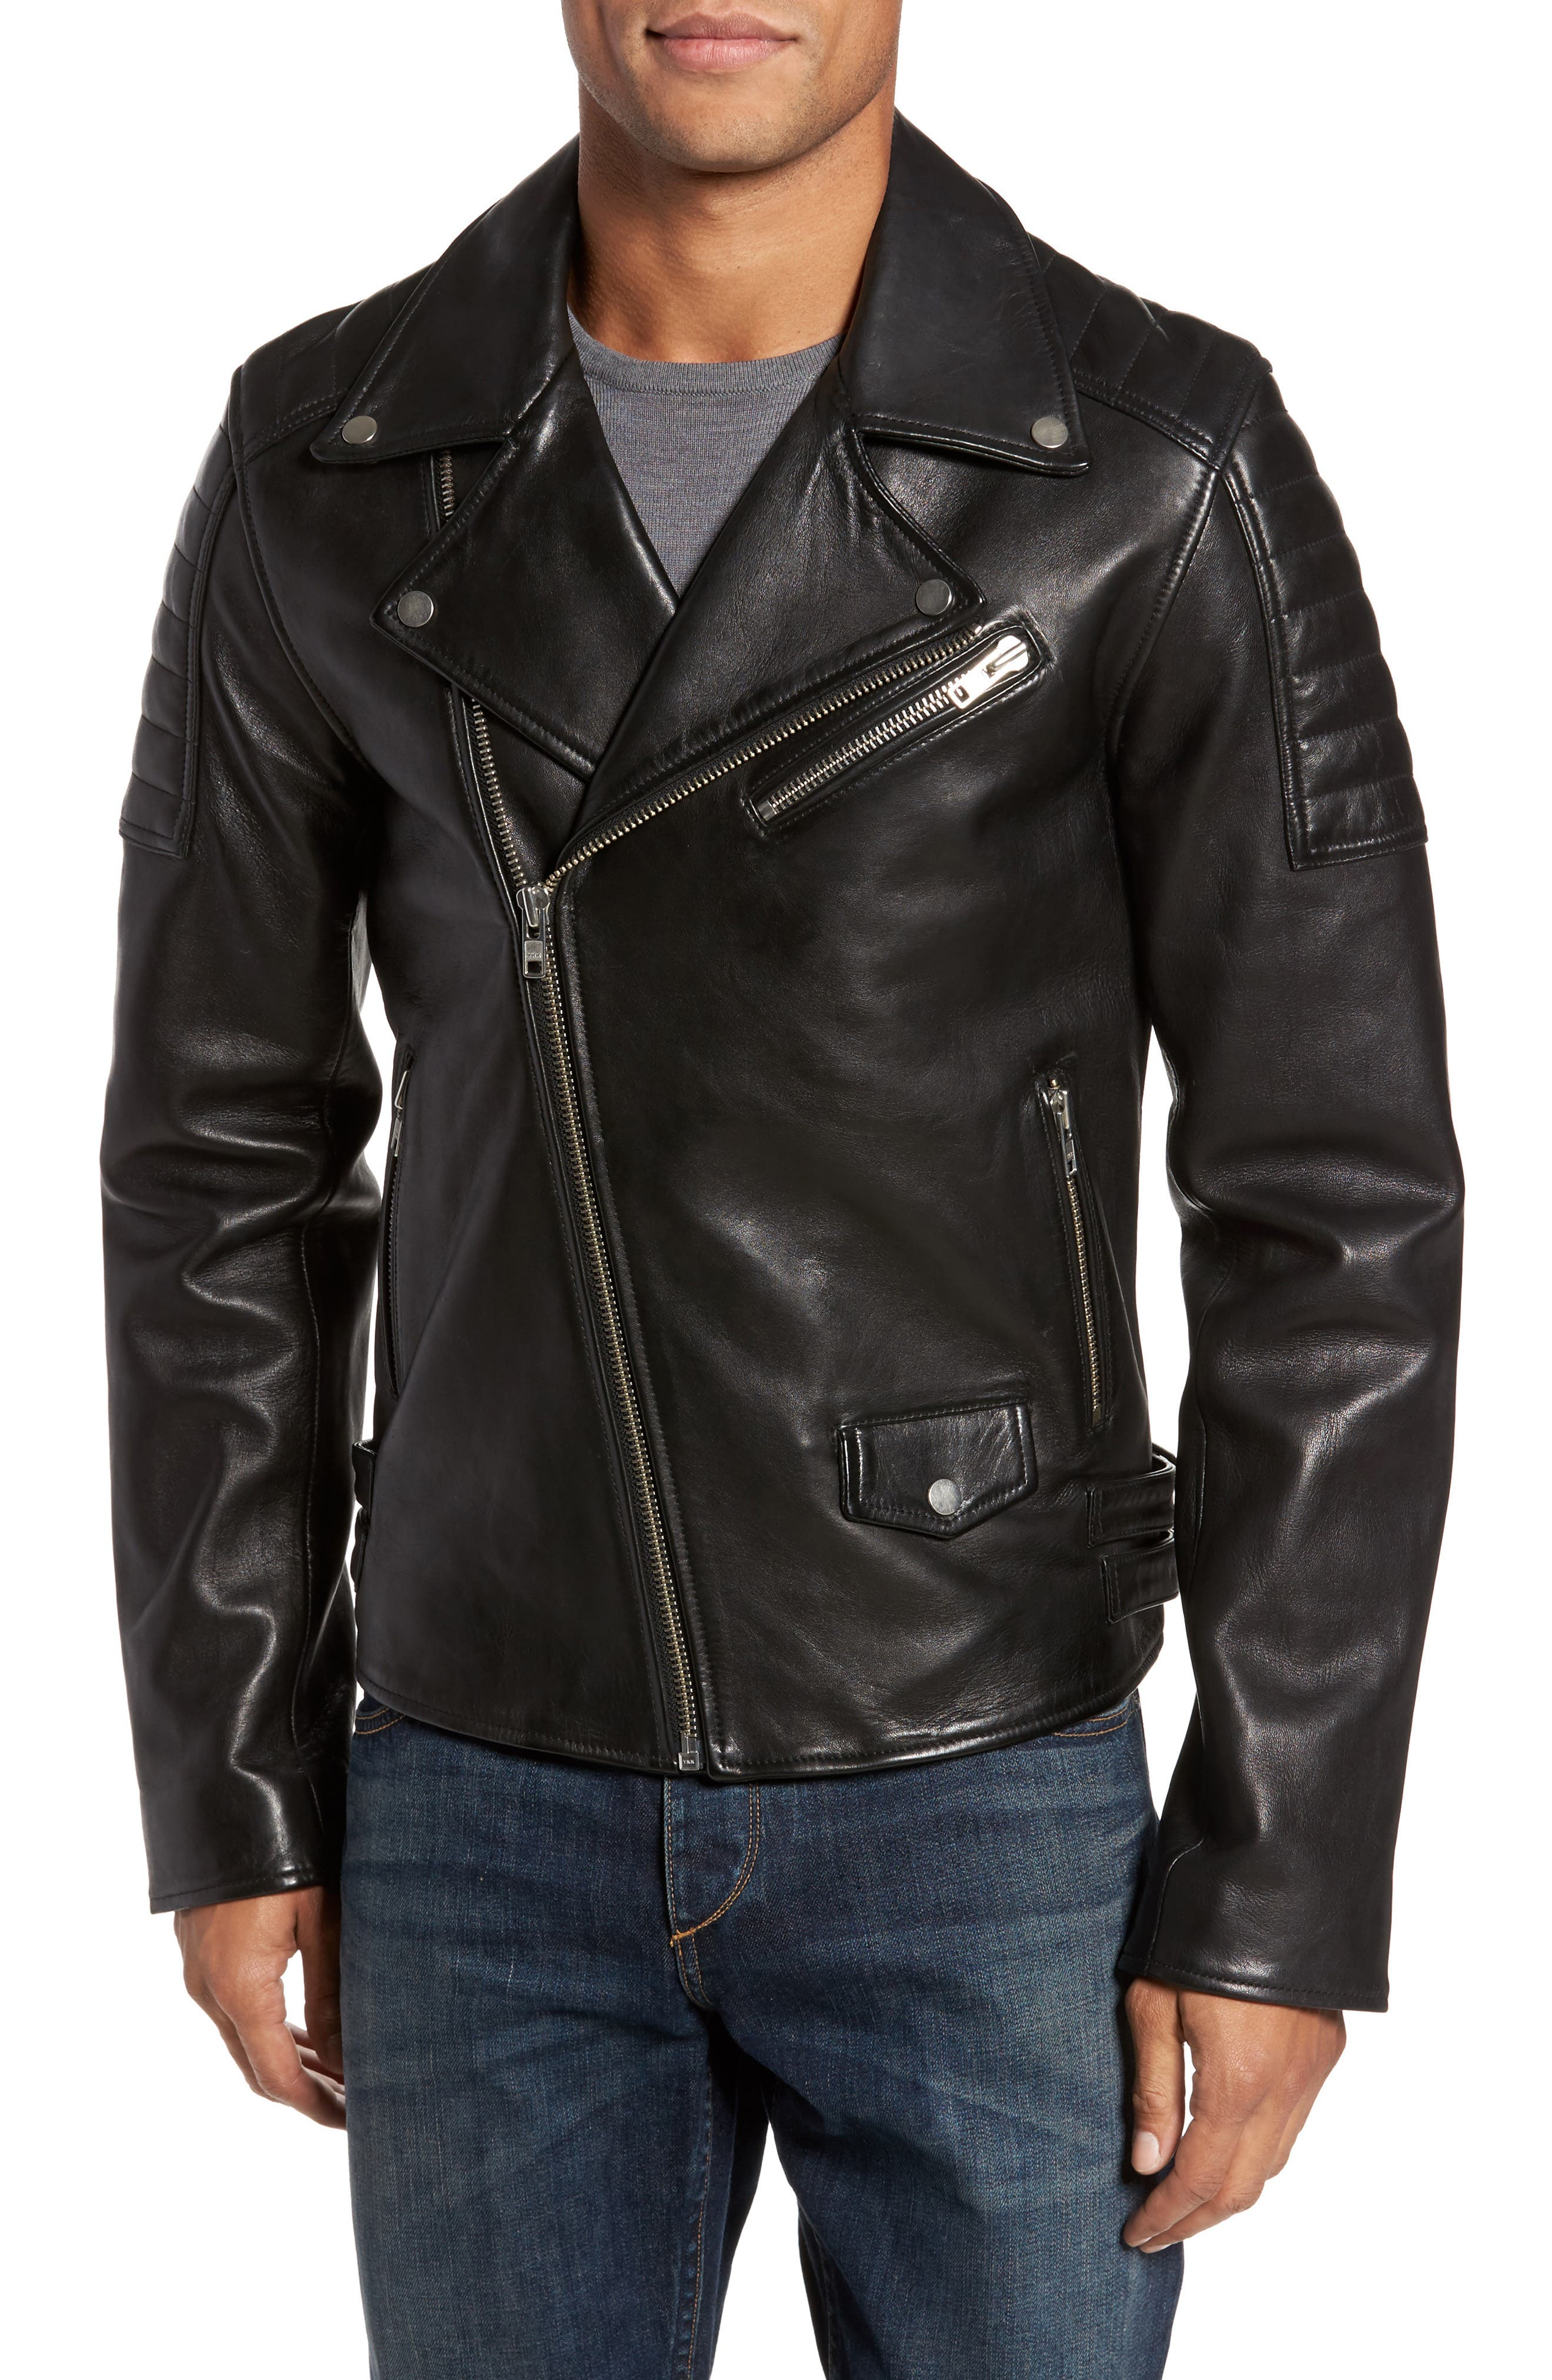 Alternate Image 1 Selected - LAMARQUE Leather Biker Jacket